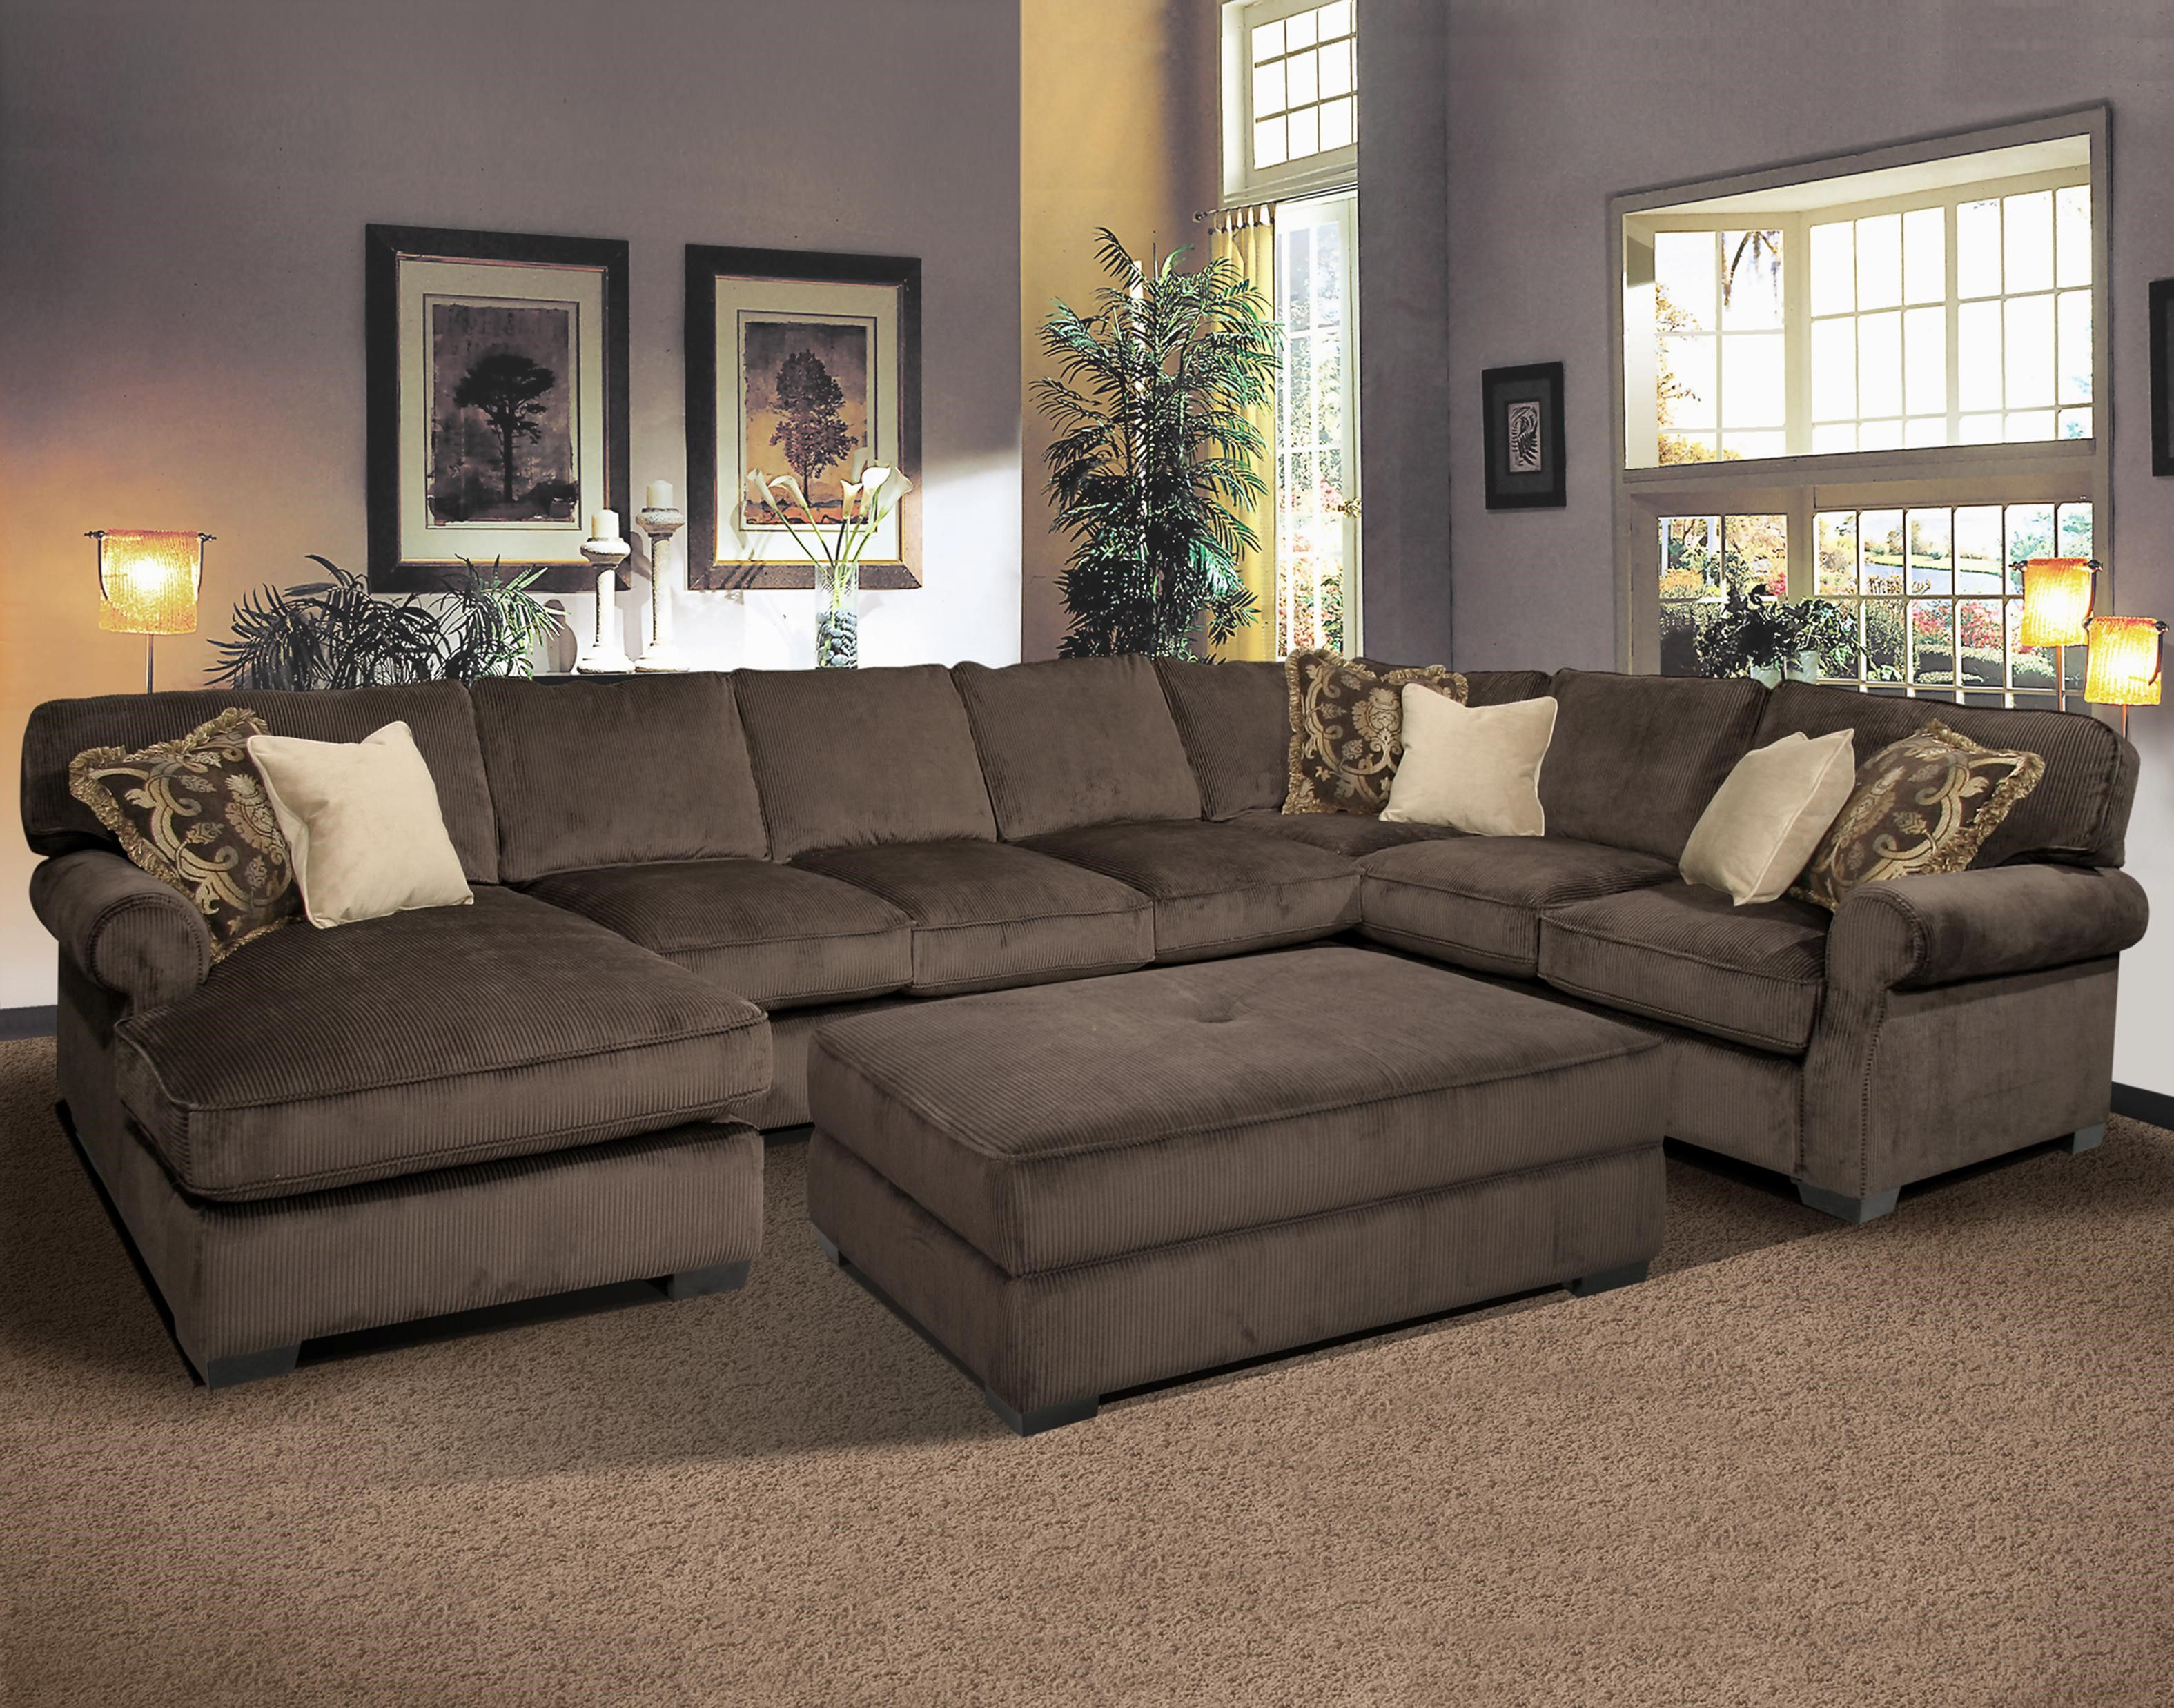 Comfortable Living Room Sofas Design With Elegant